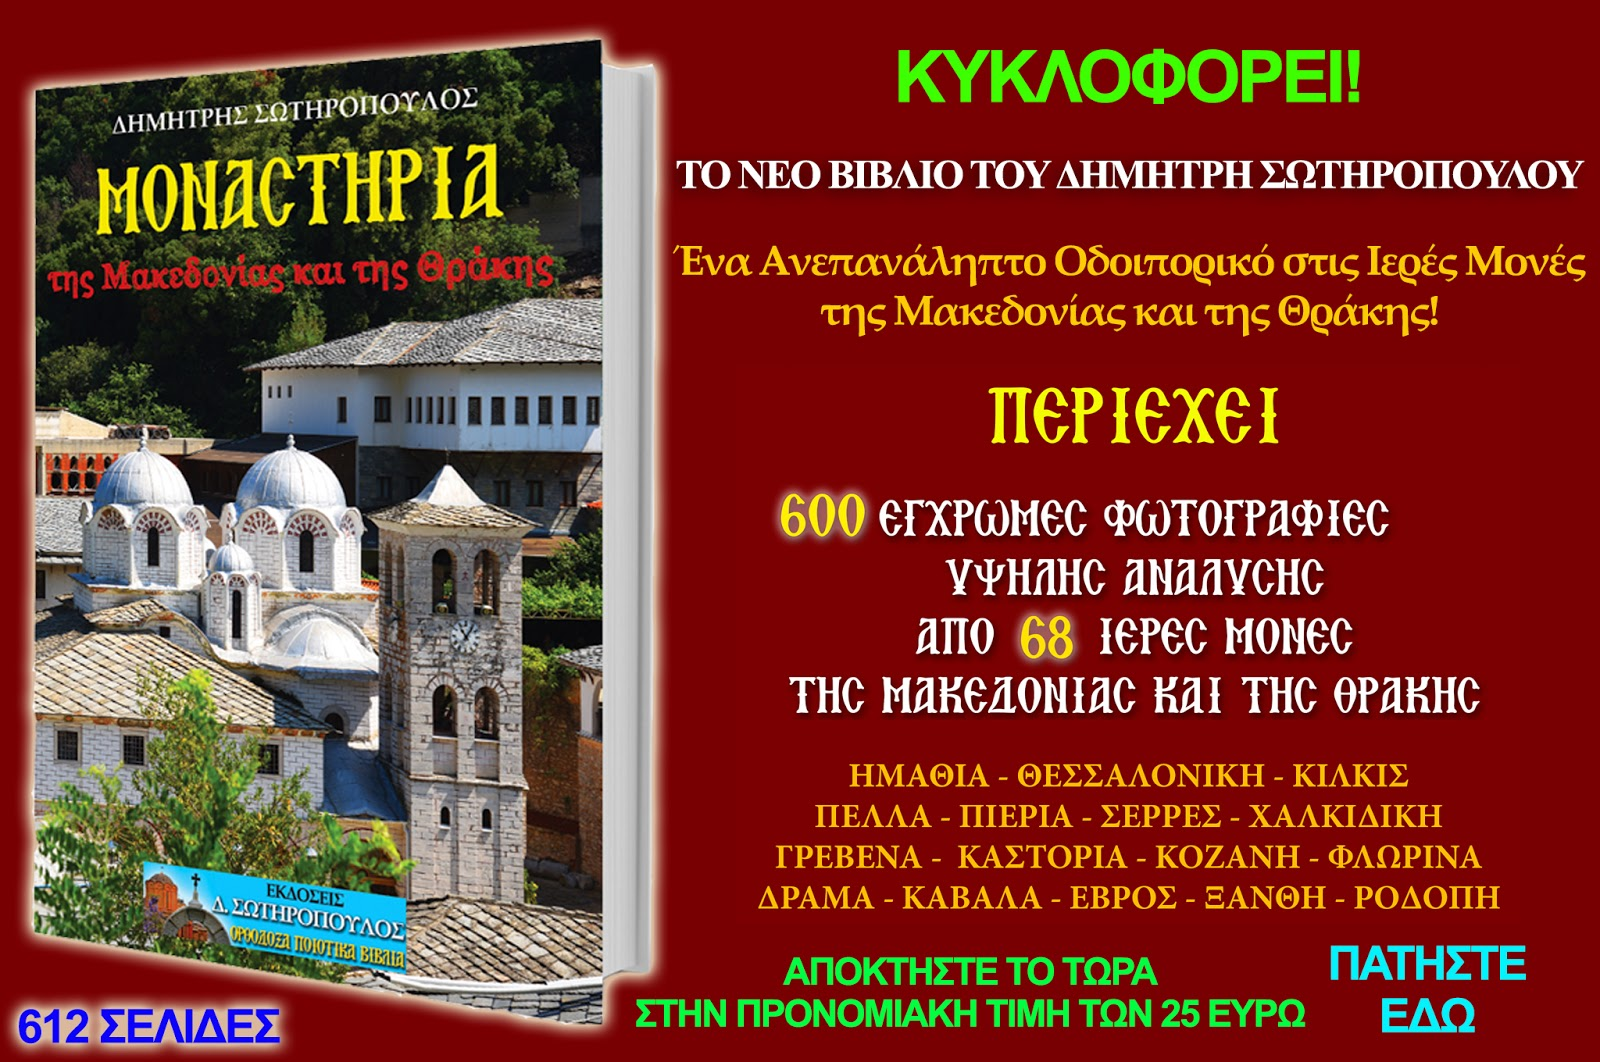 https://www.dimitrisotiropoulosbooks.com/collections/frontpage/products/product-8